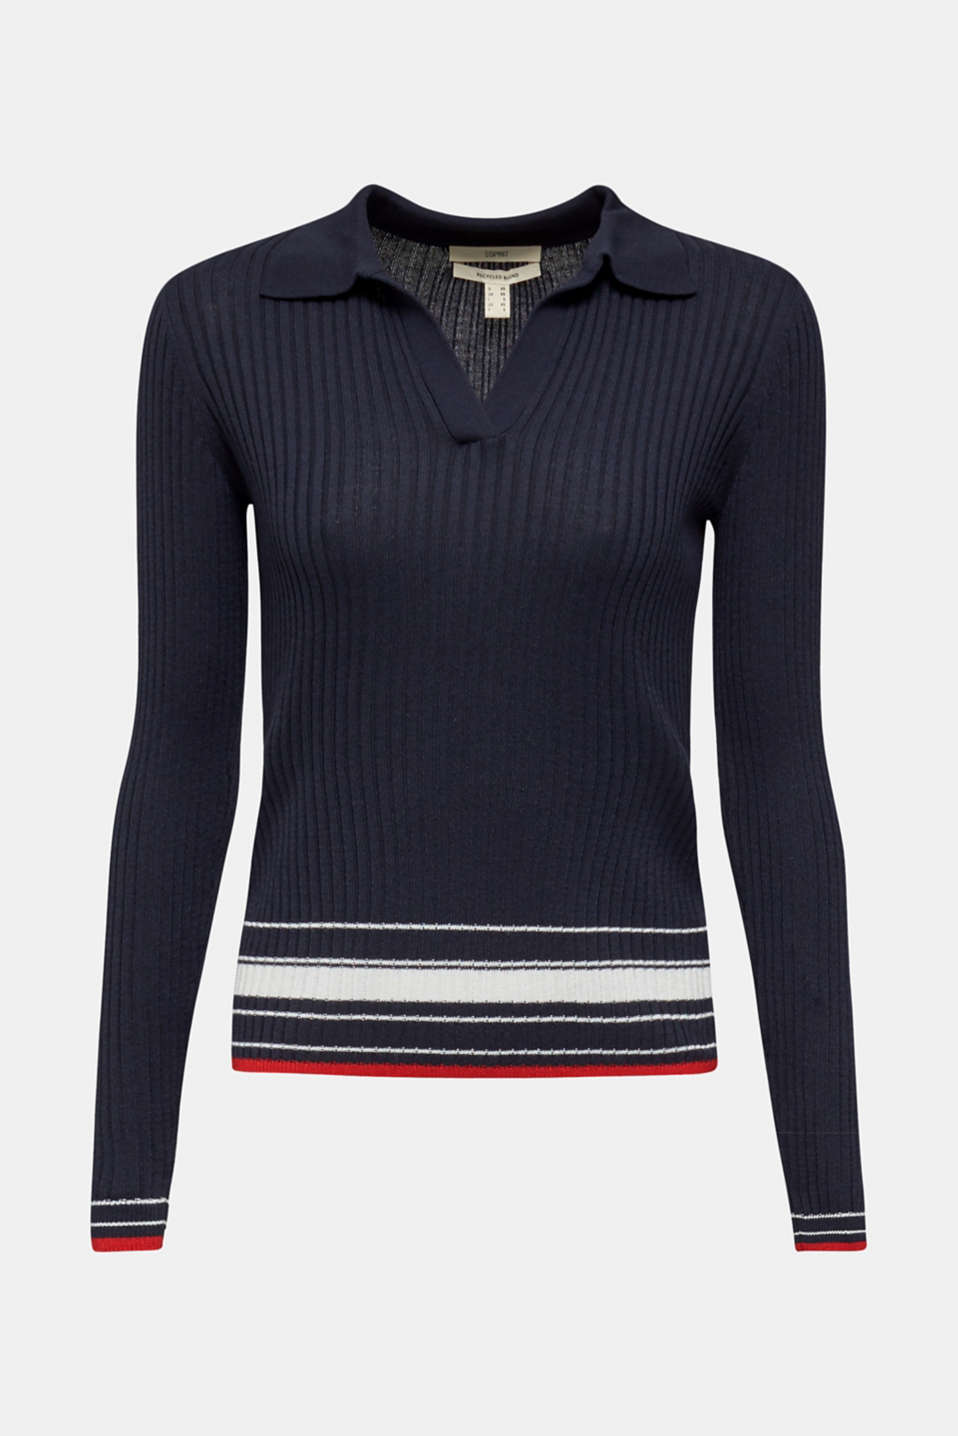 Ribbed jumper with stripes, recycled, NAVY 3, detail image number 6